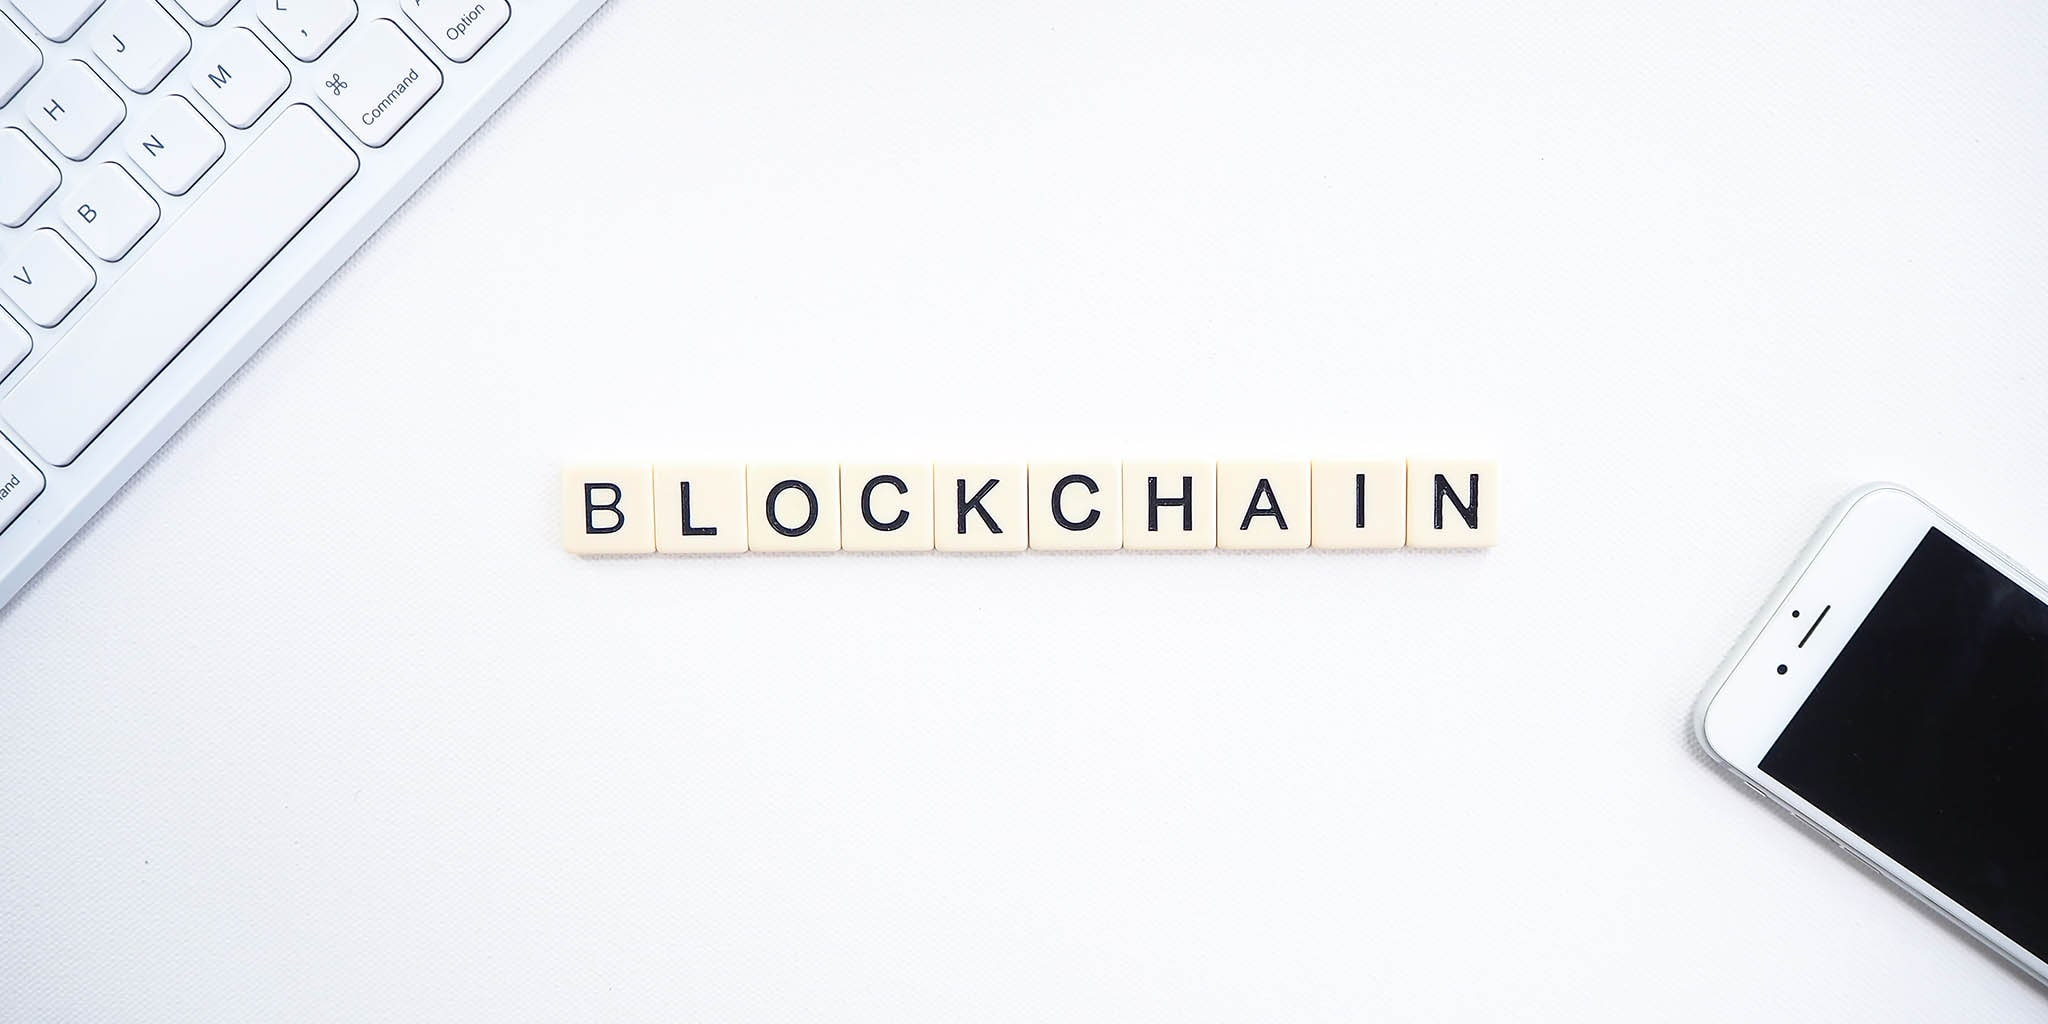 Scrabble tiles placed on a table to spell out Blockchain